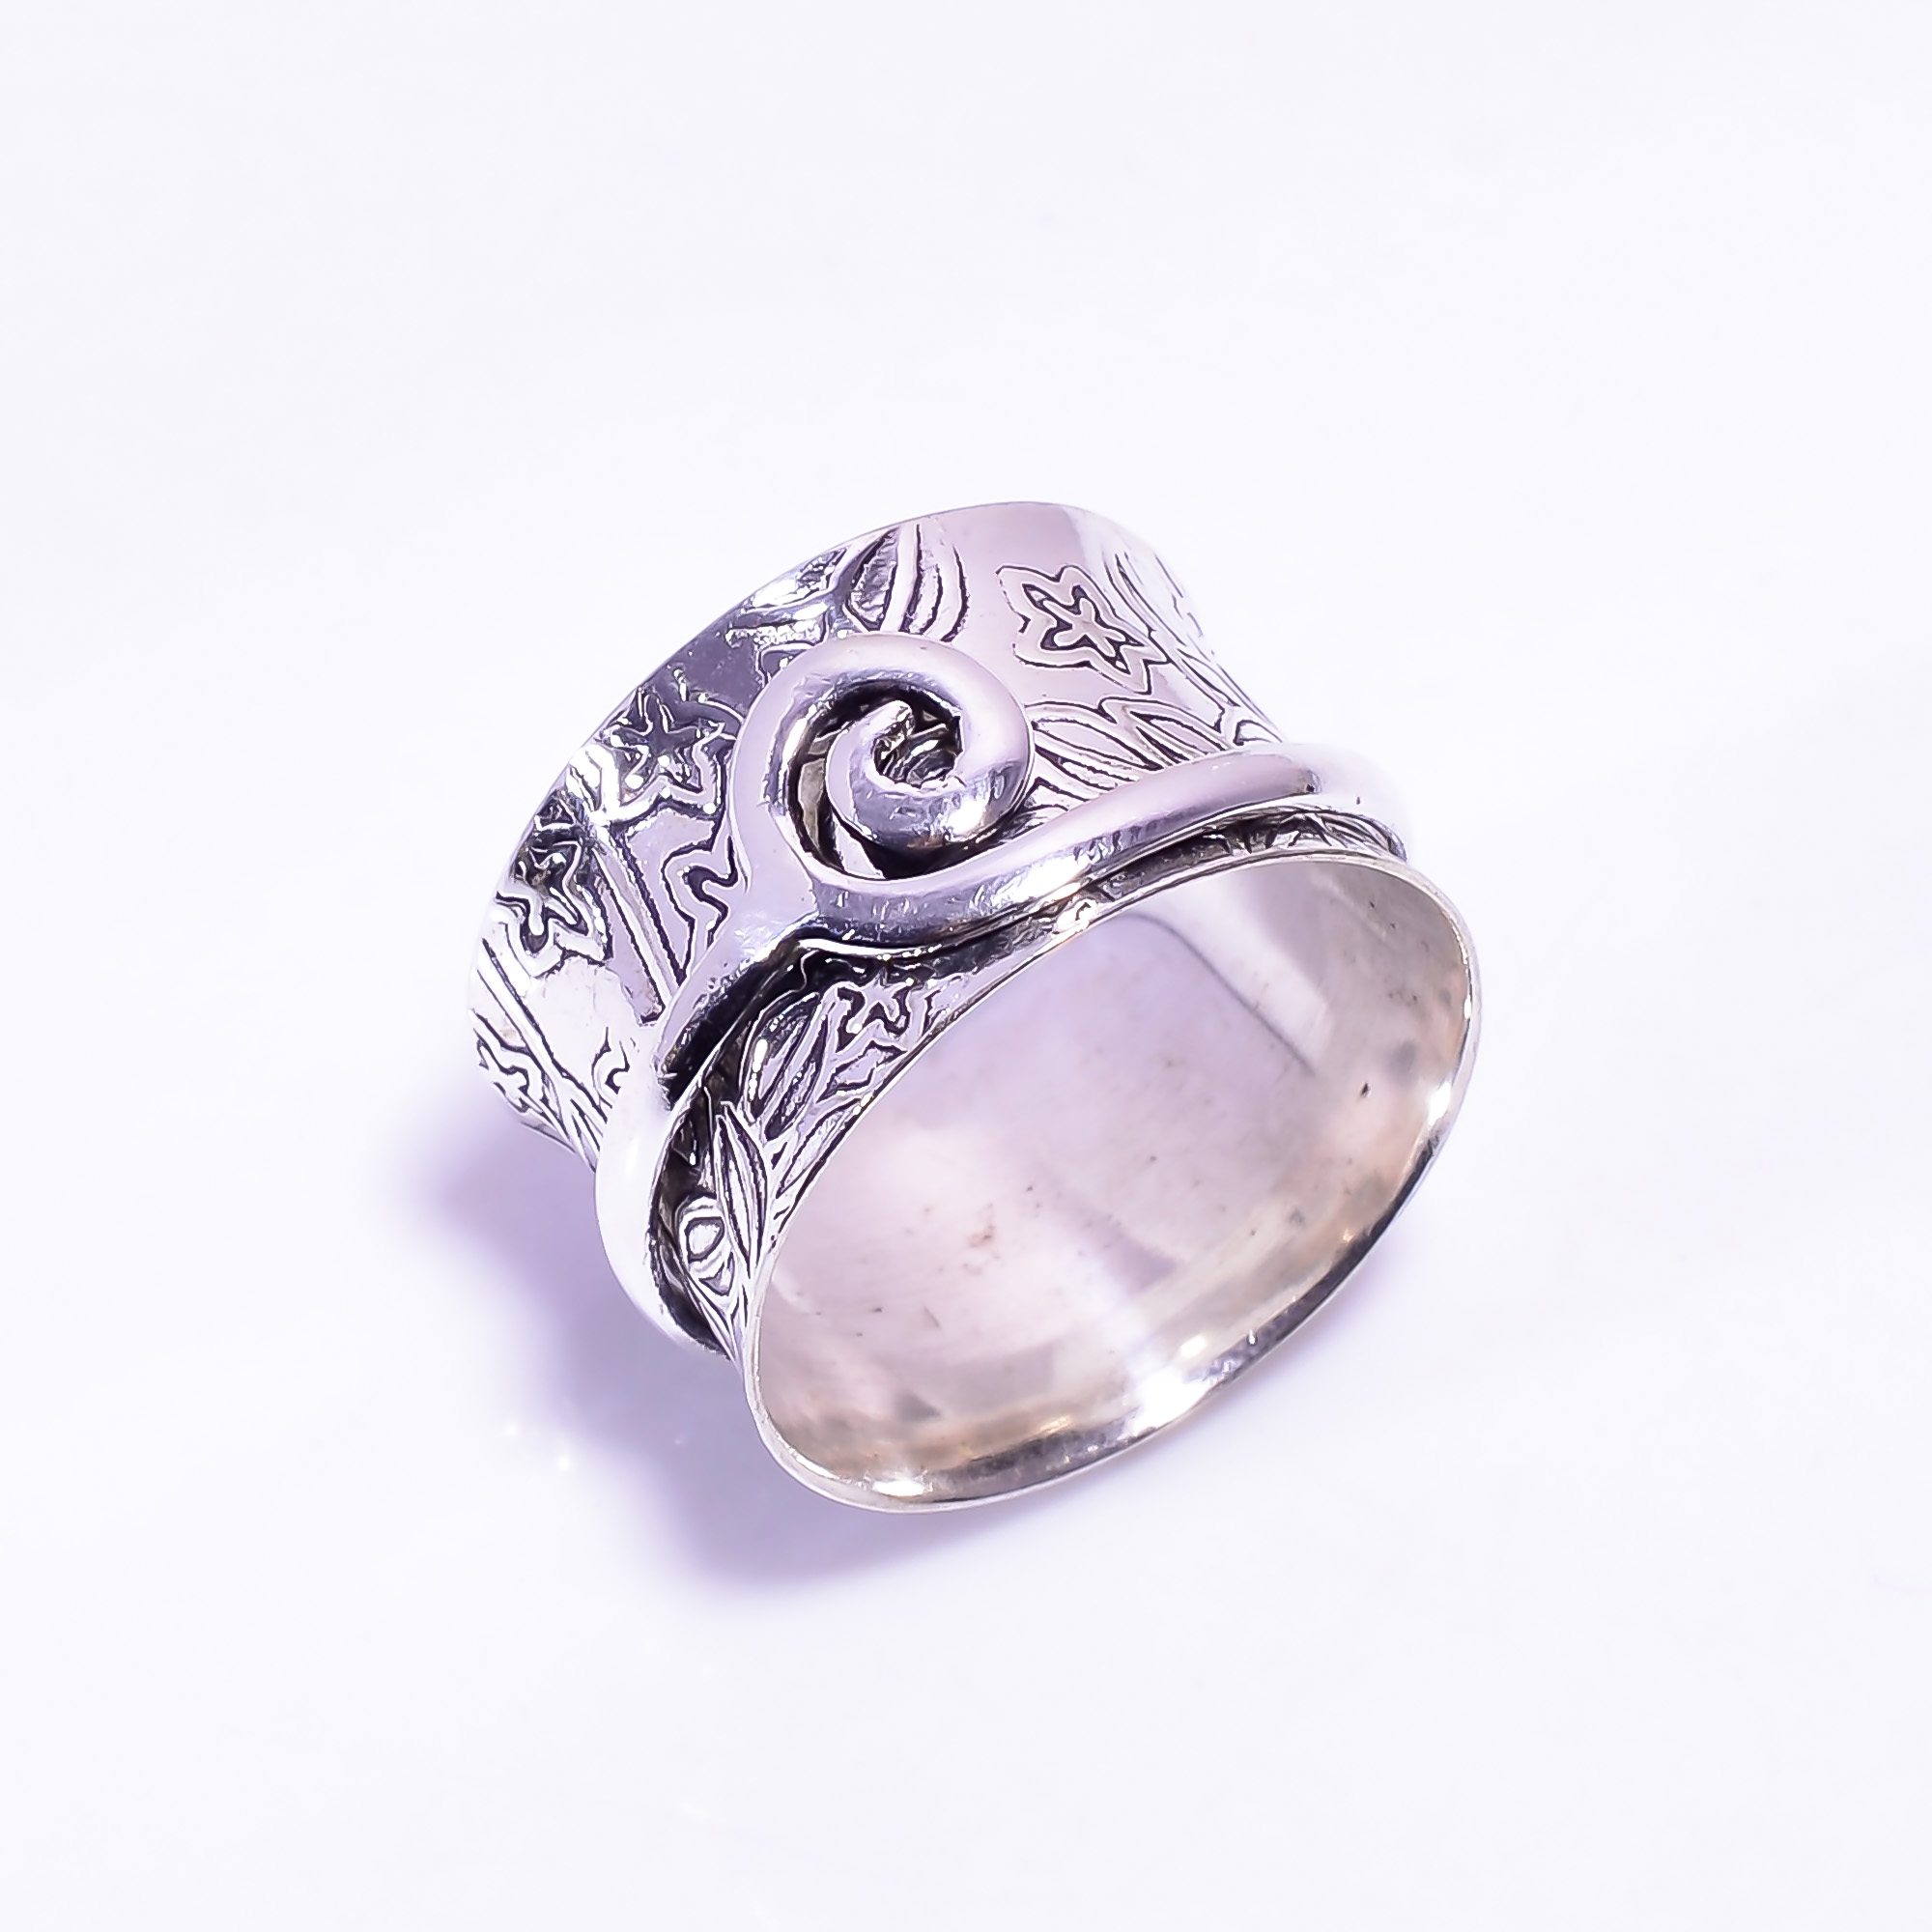 925 Sterling Silver Meditation Spinner Ring Size US 9.75